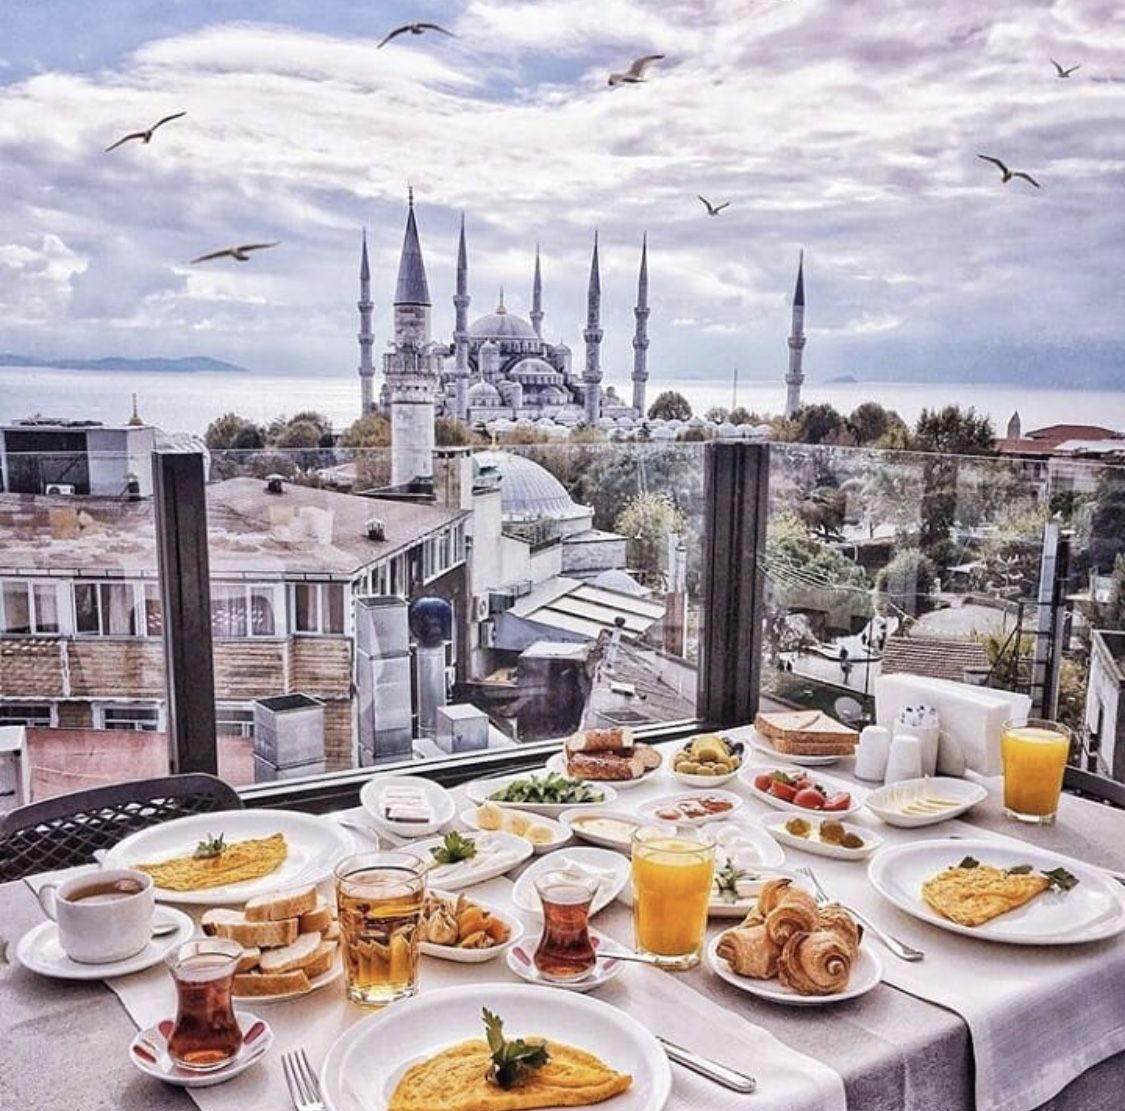 #traveladdict #morning #breakfast #doctorlifestyle #istanbul #me #doctor #doctorlazarescu #drlazarescu #travel #world